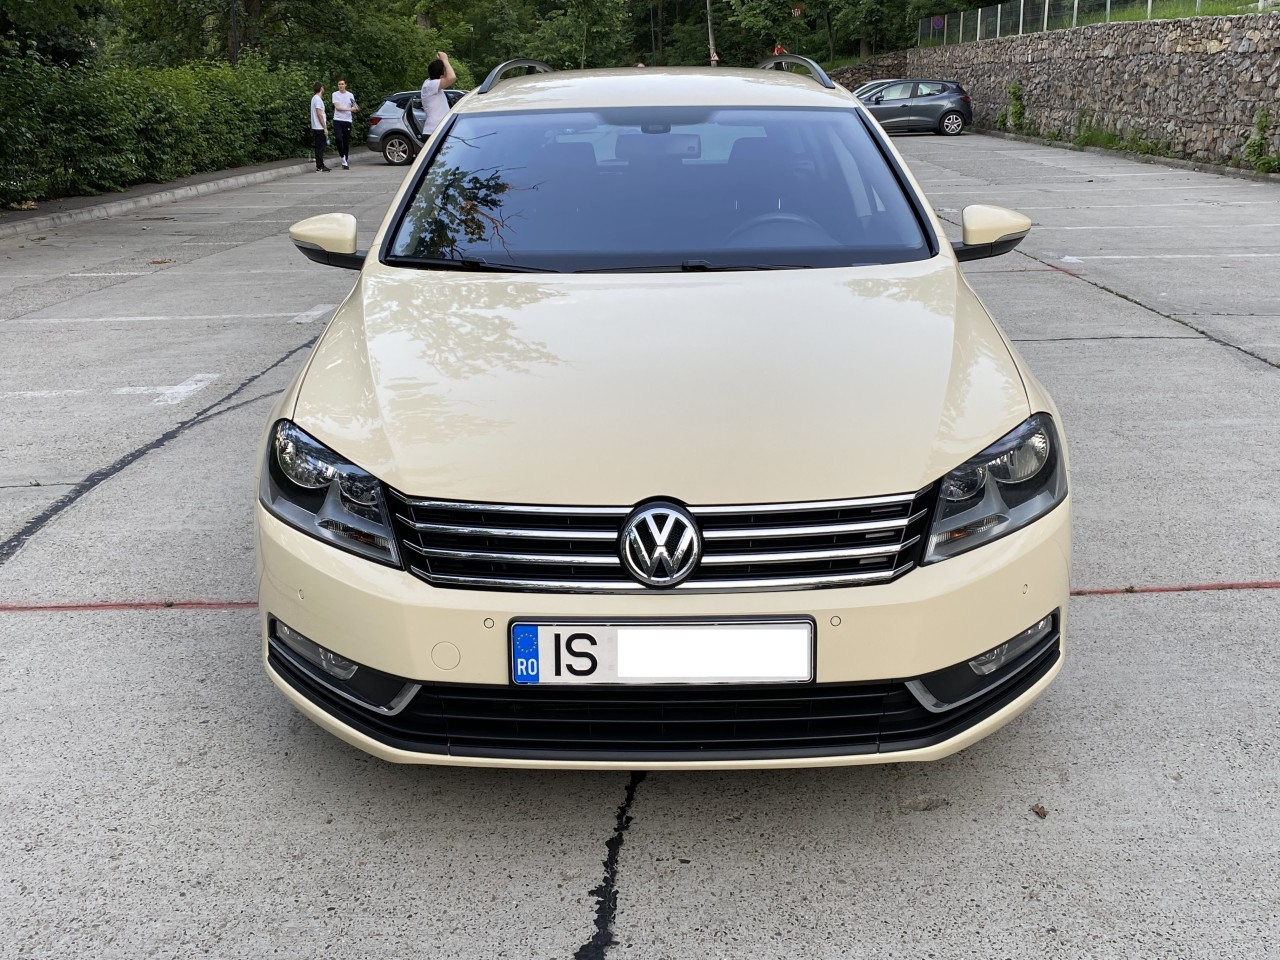 VW Passat 1,6 TDI full options ,fab. 2012